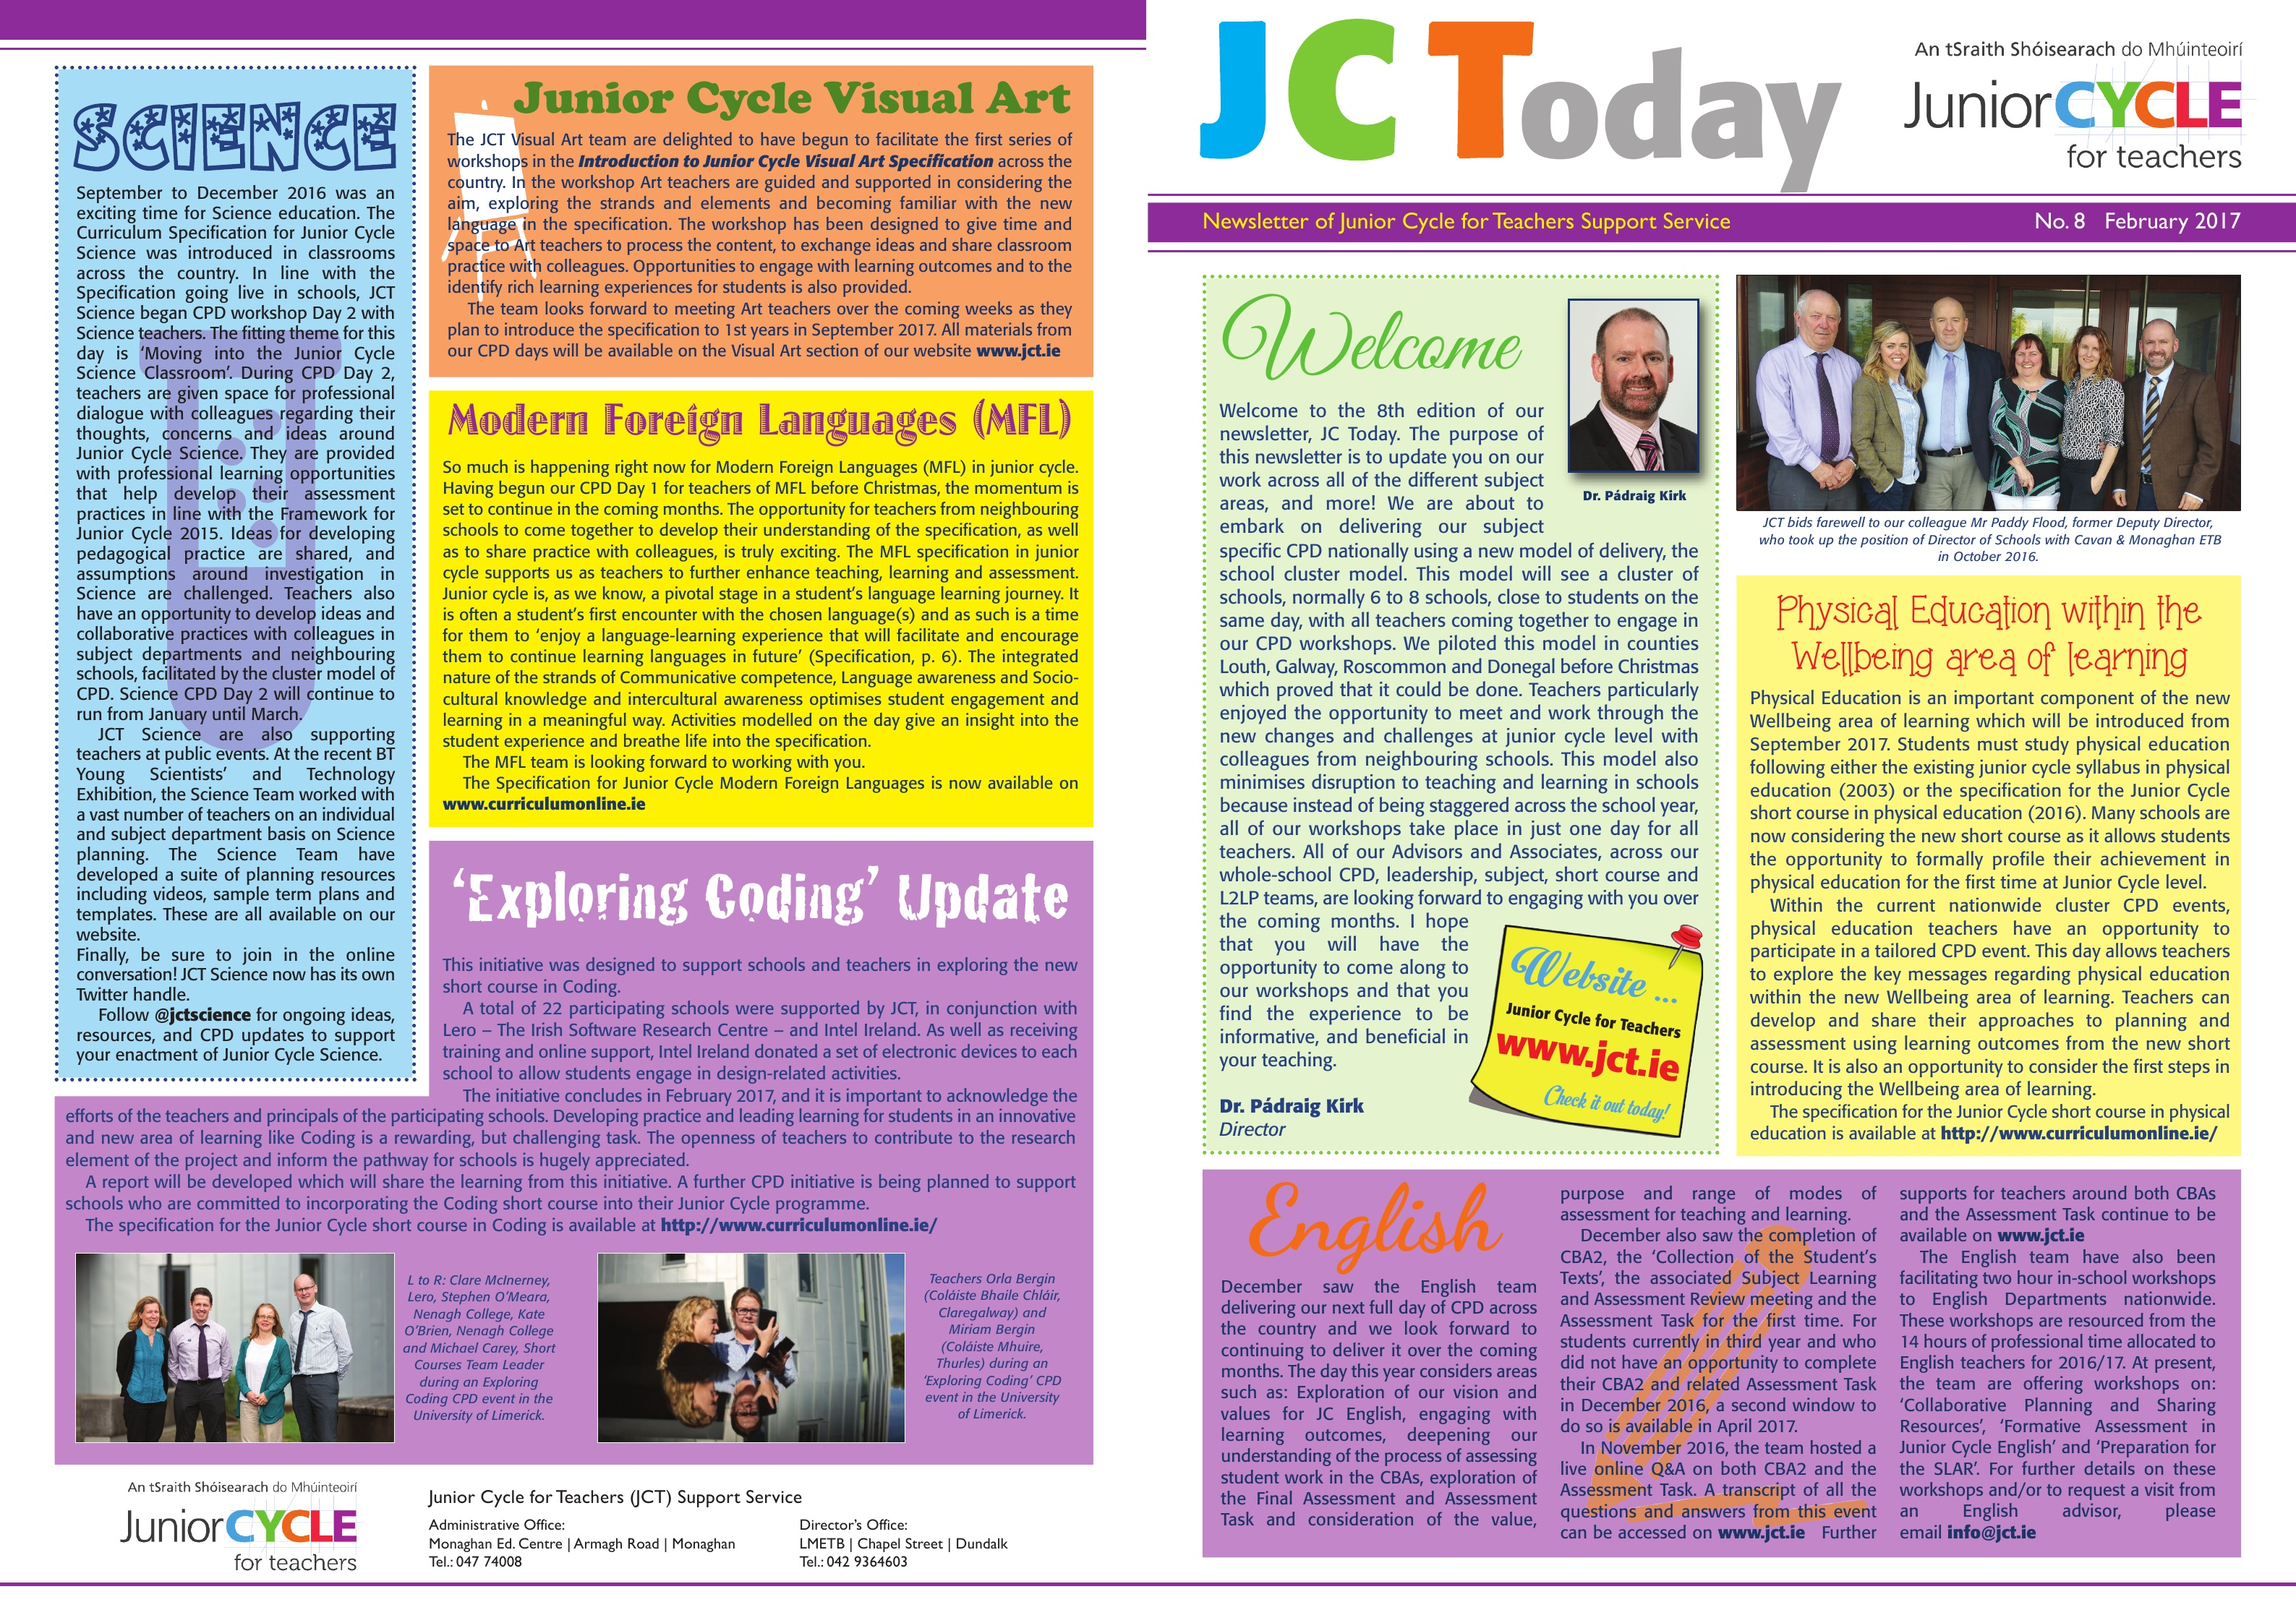 JCToday Newsletter No. 8